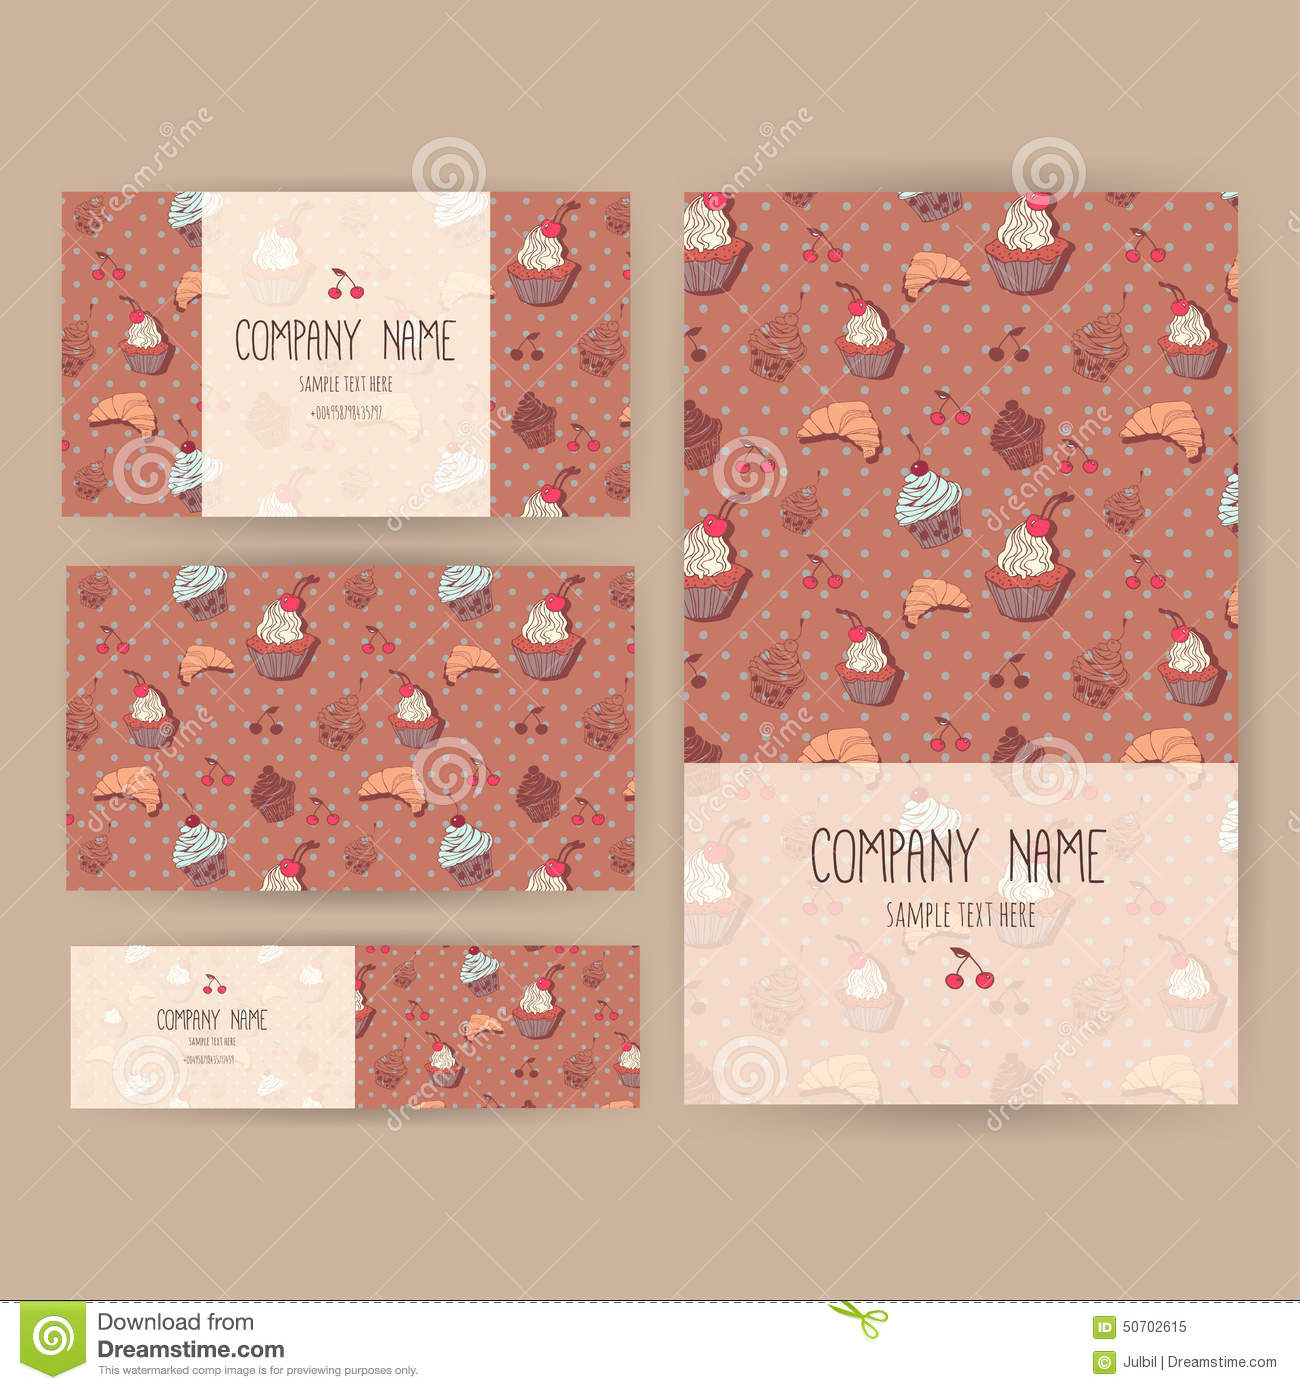 vector business set template cute hand drawn dessert vector business set template cute hand drawn dessert illustrations restaurant or cafe branding elements